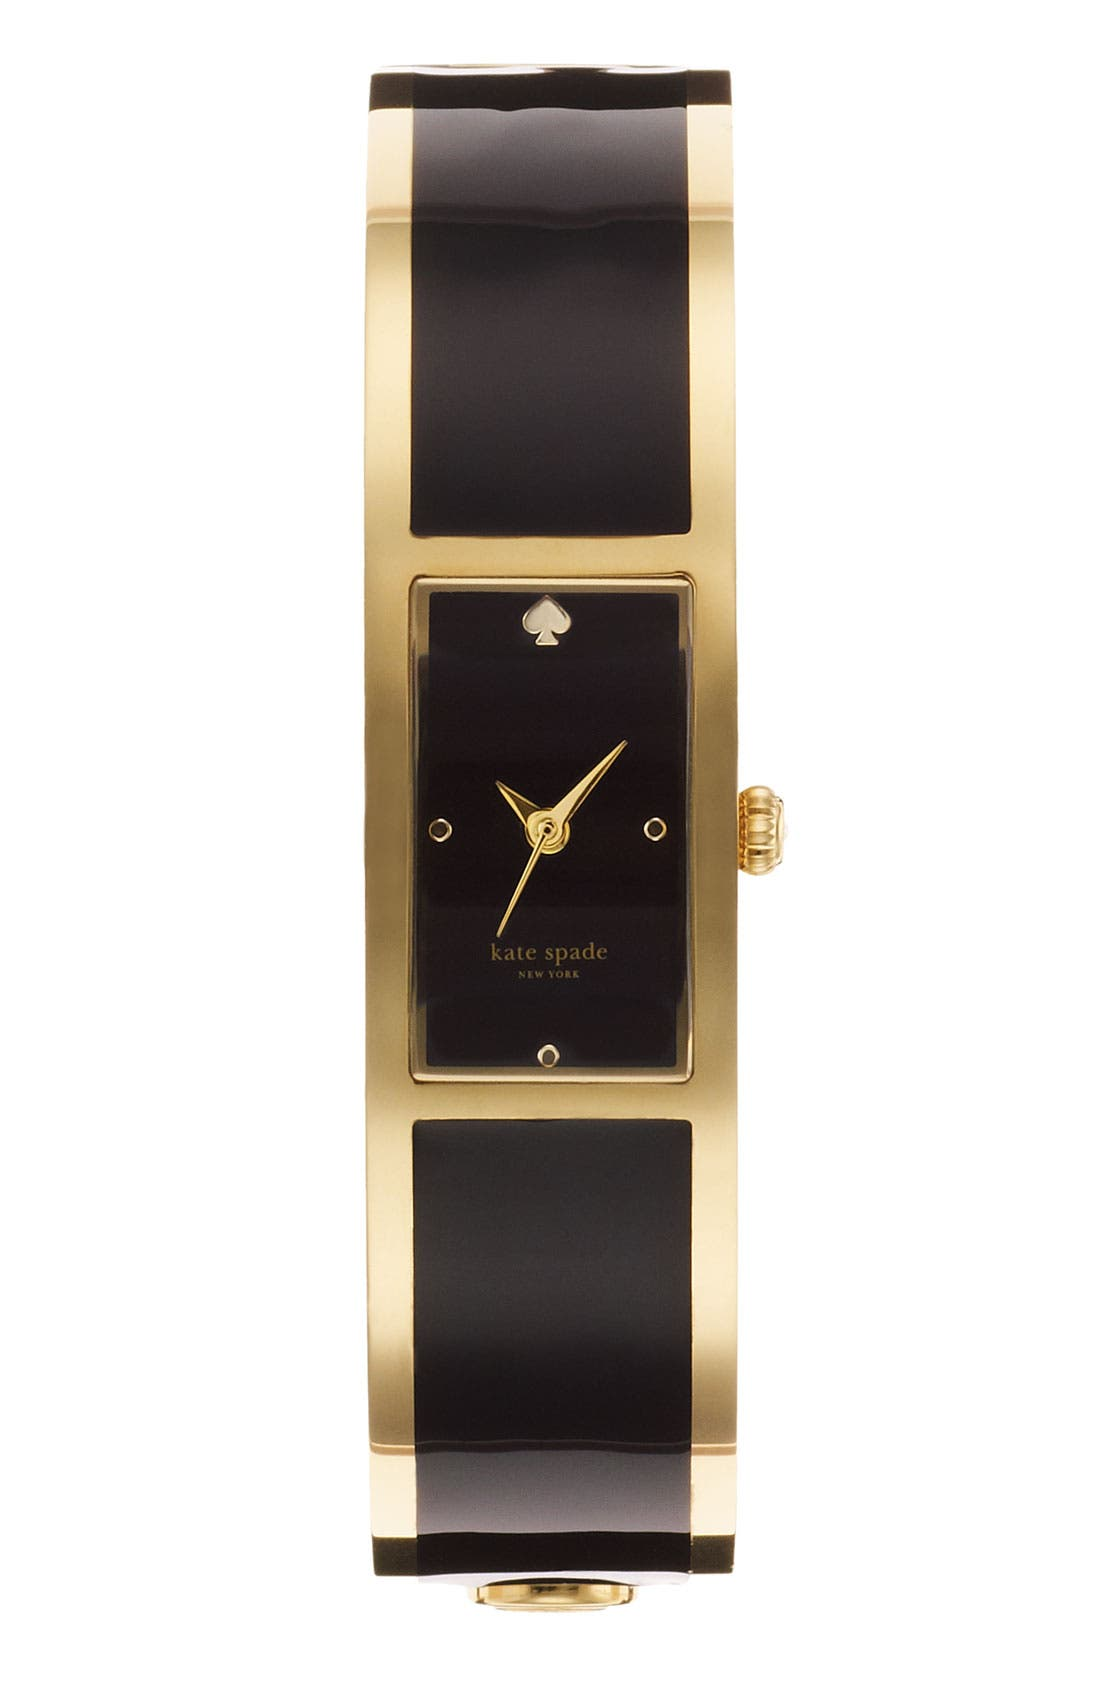 Main Image - kate spade new york 'carousel' bangle watch, 15mm x 16mm